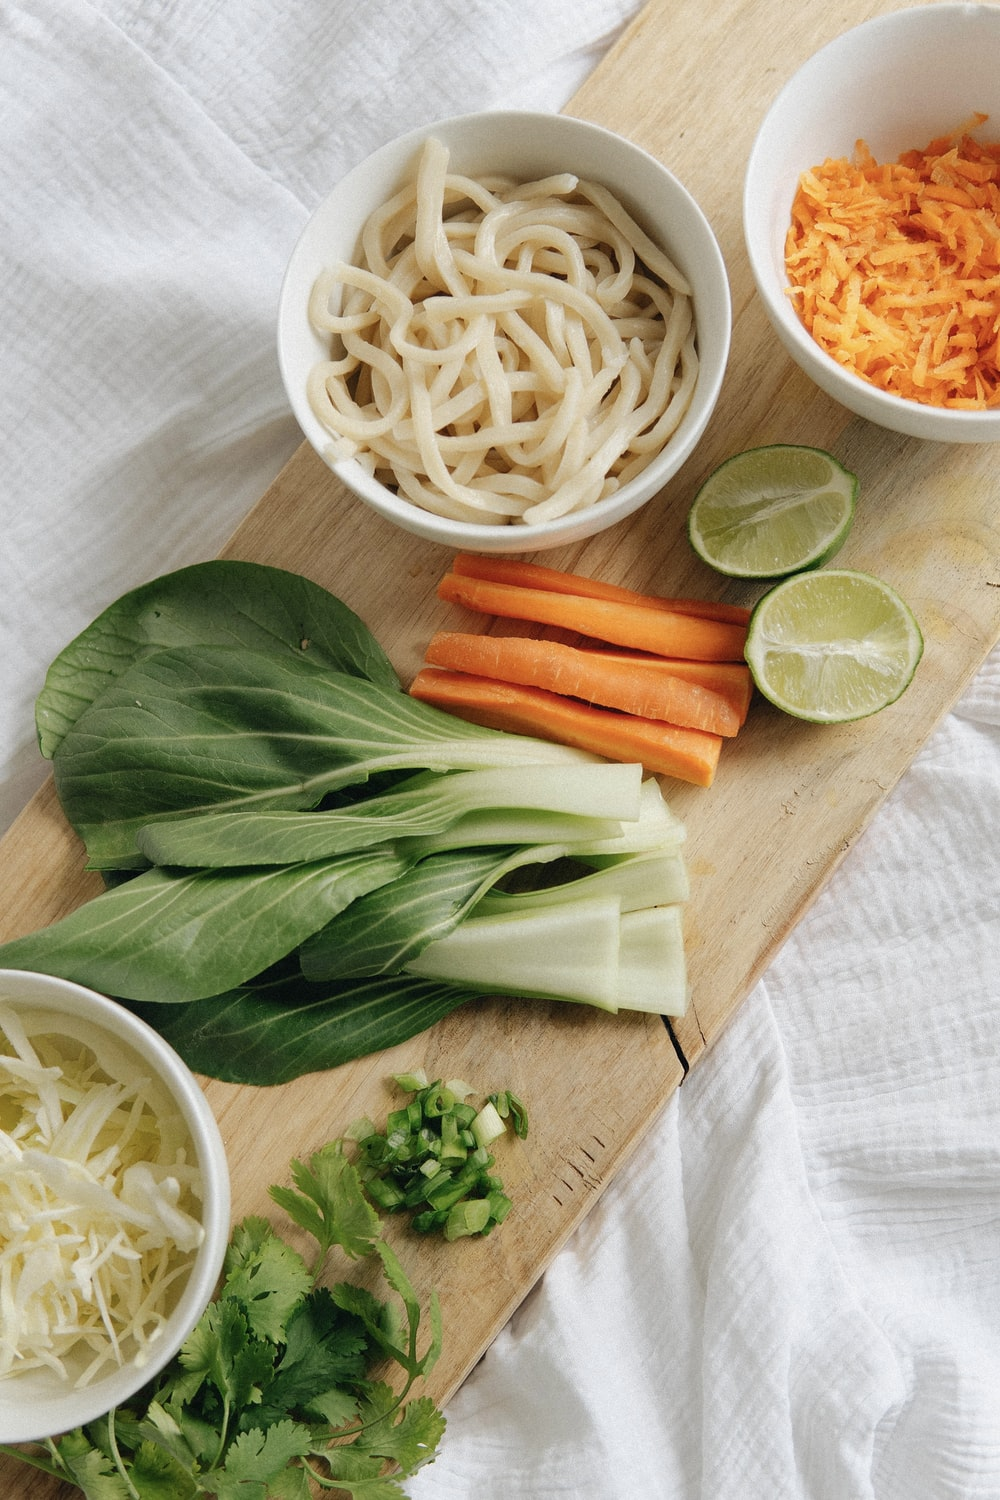 white pasta with carrots and green leaf vegetable on brown wooden chopping board